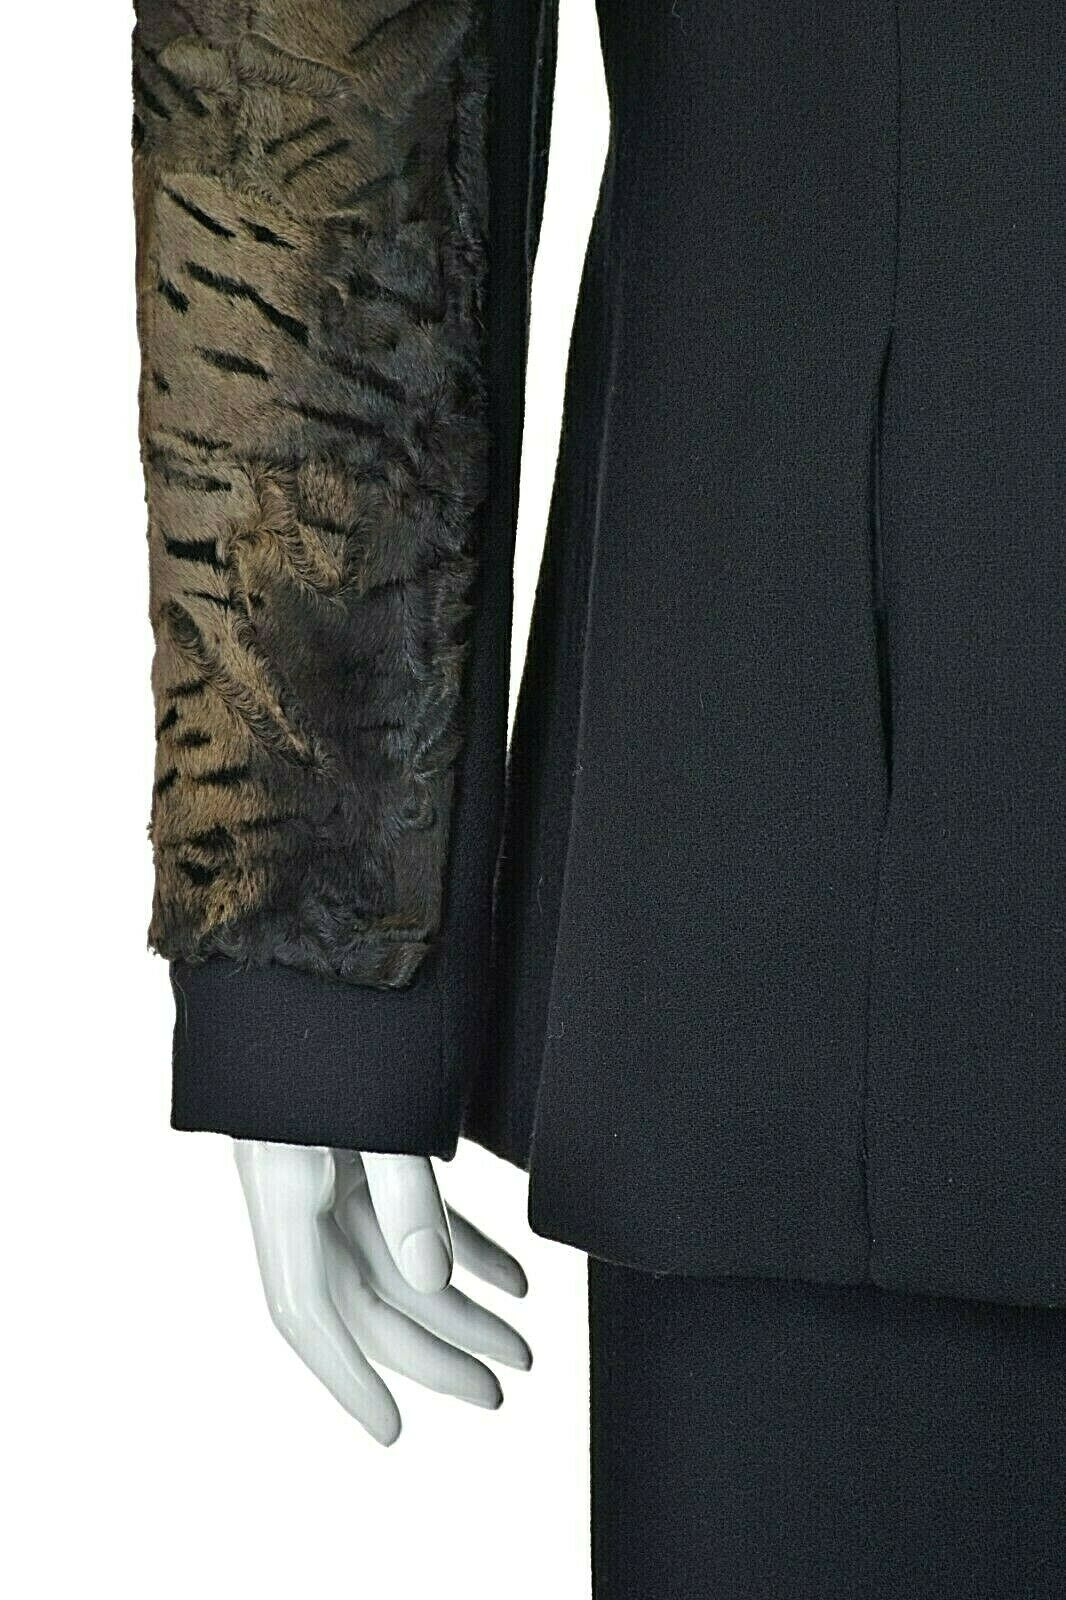 TRAVILLA Vintage Wool Crepe Skirt Suit with Persi… - image 3